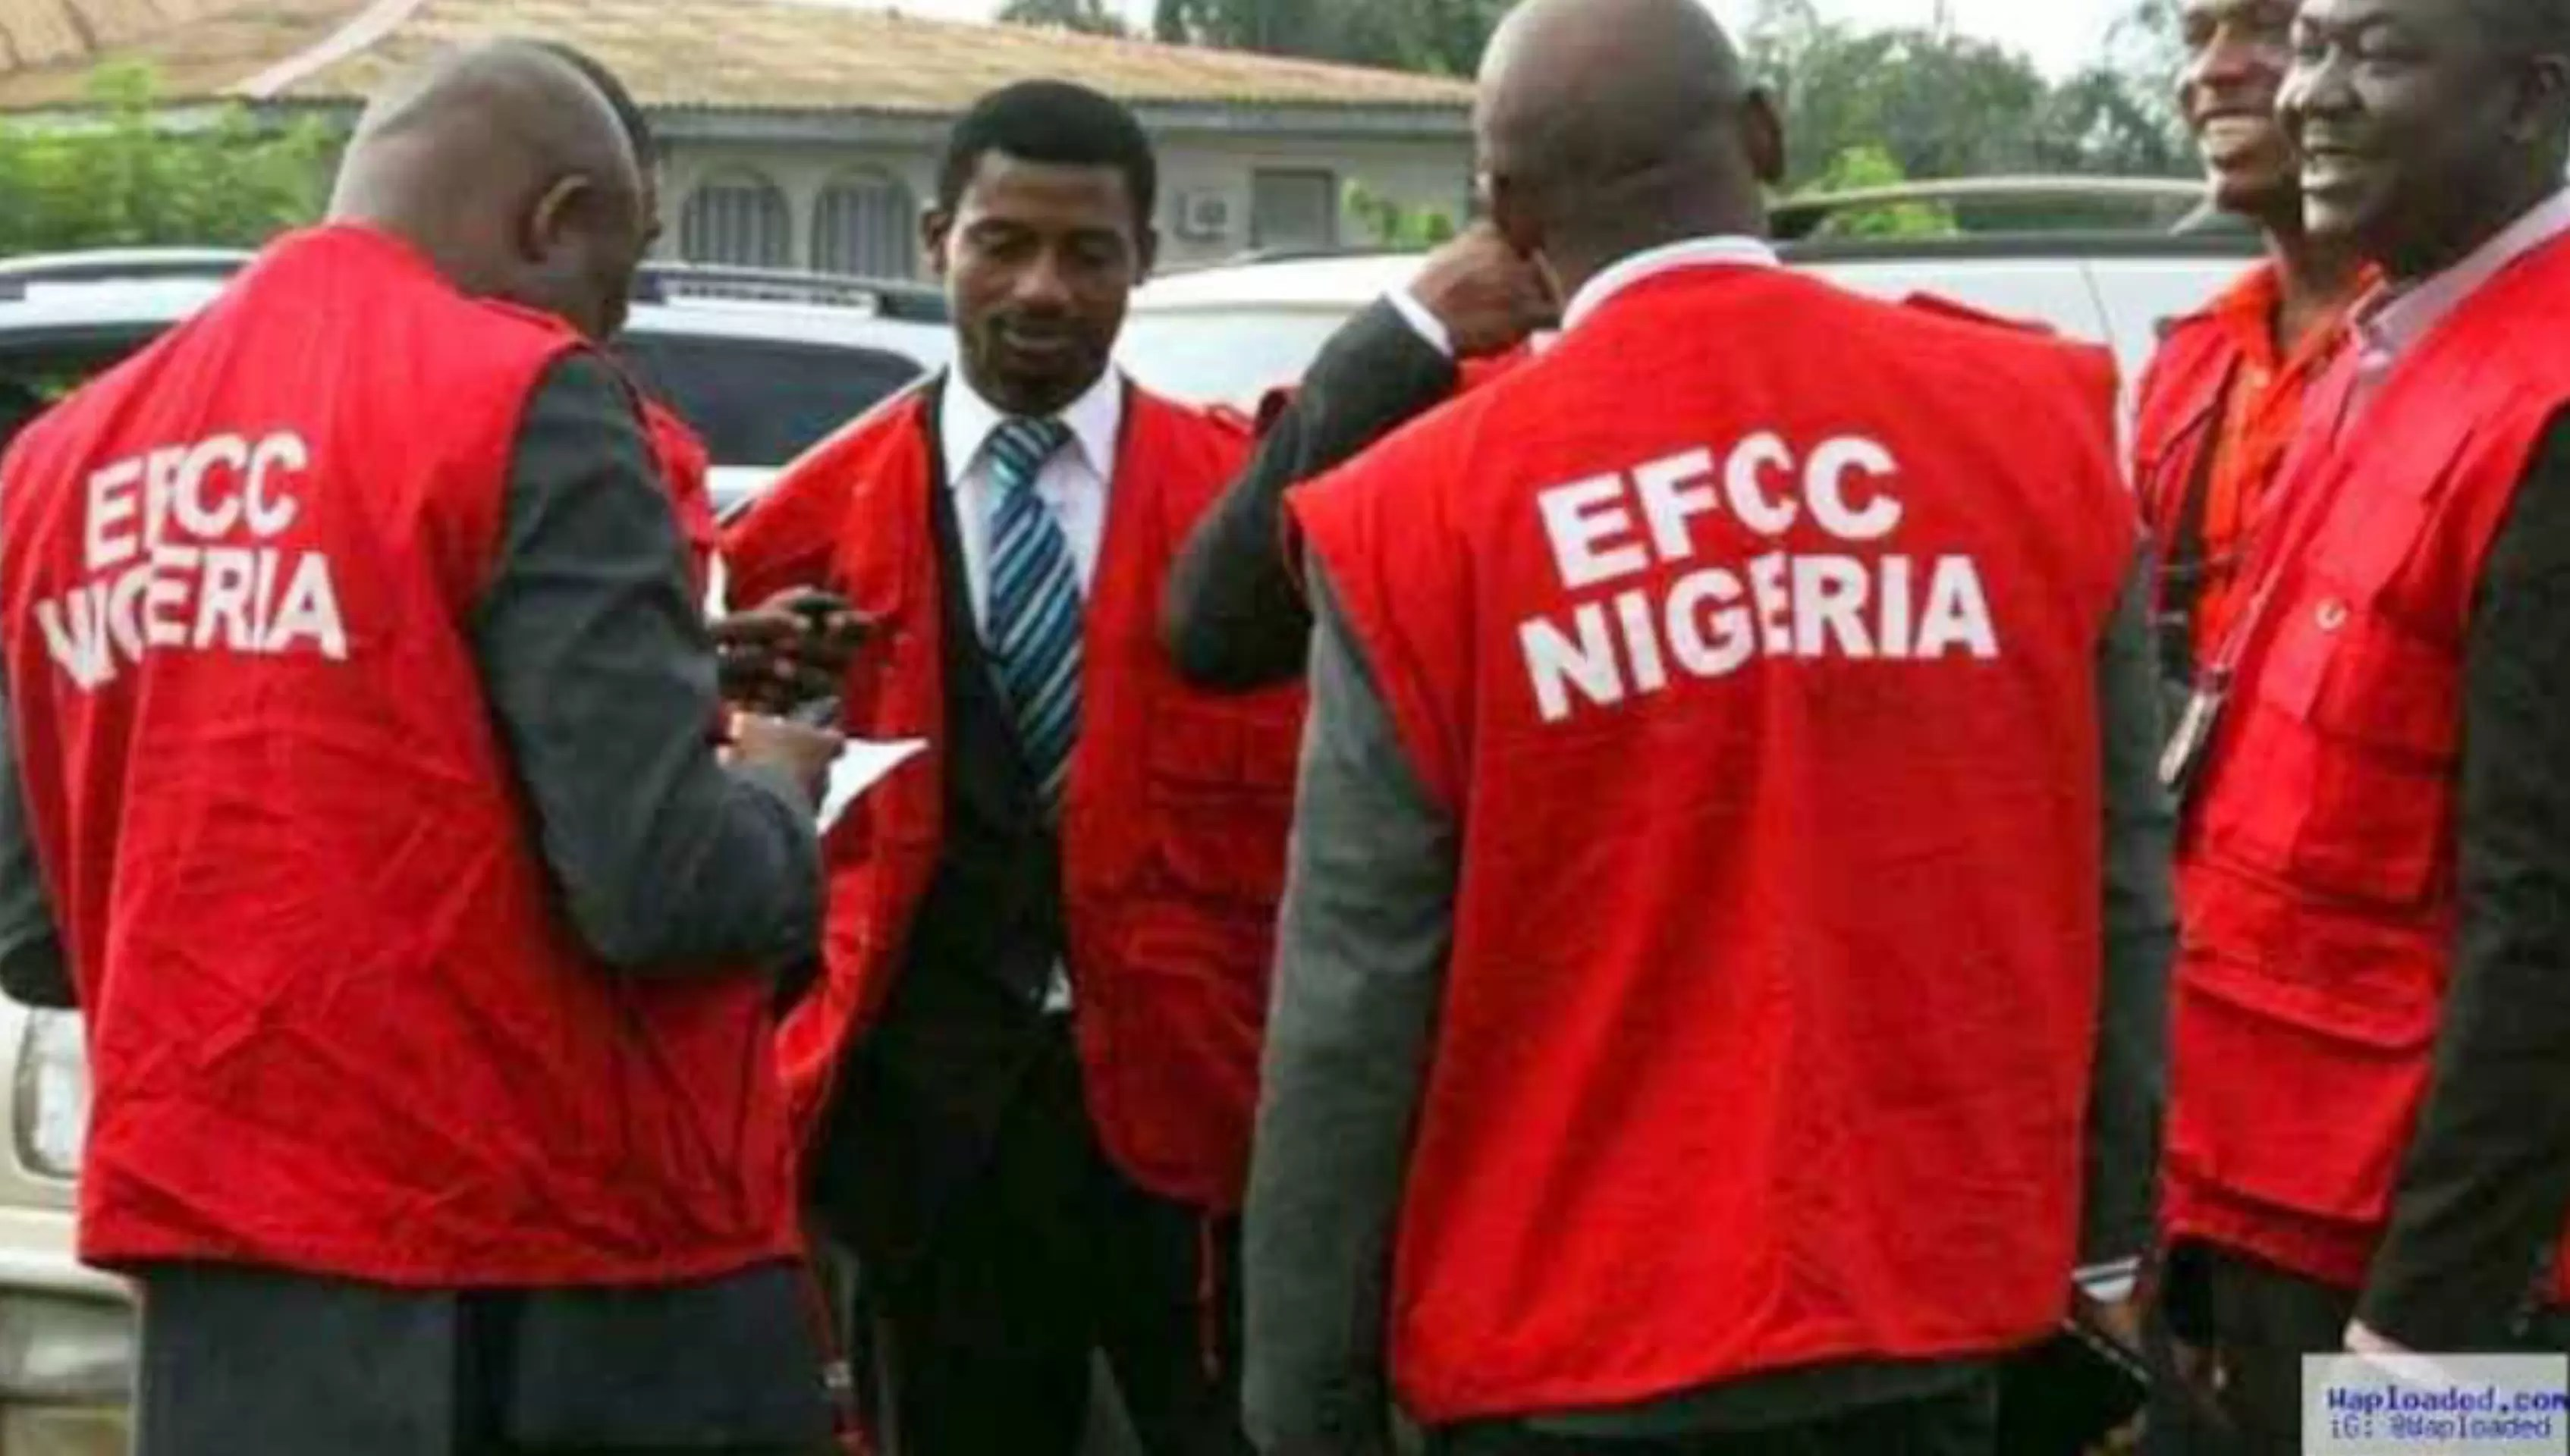 Efcc Uncovers Alleged Fraud Of N5bn From Kwara Revenue Fund